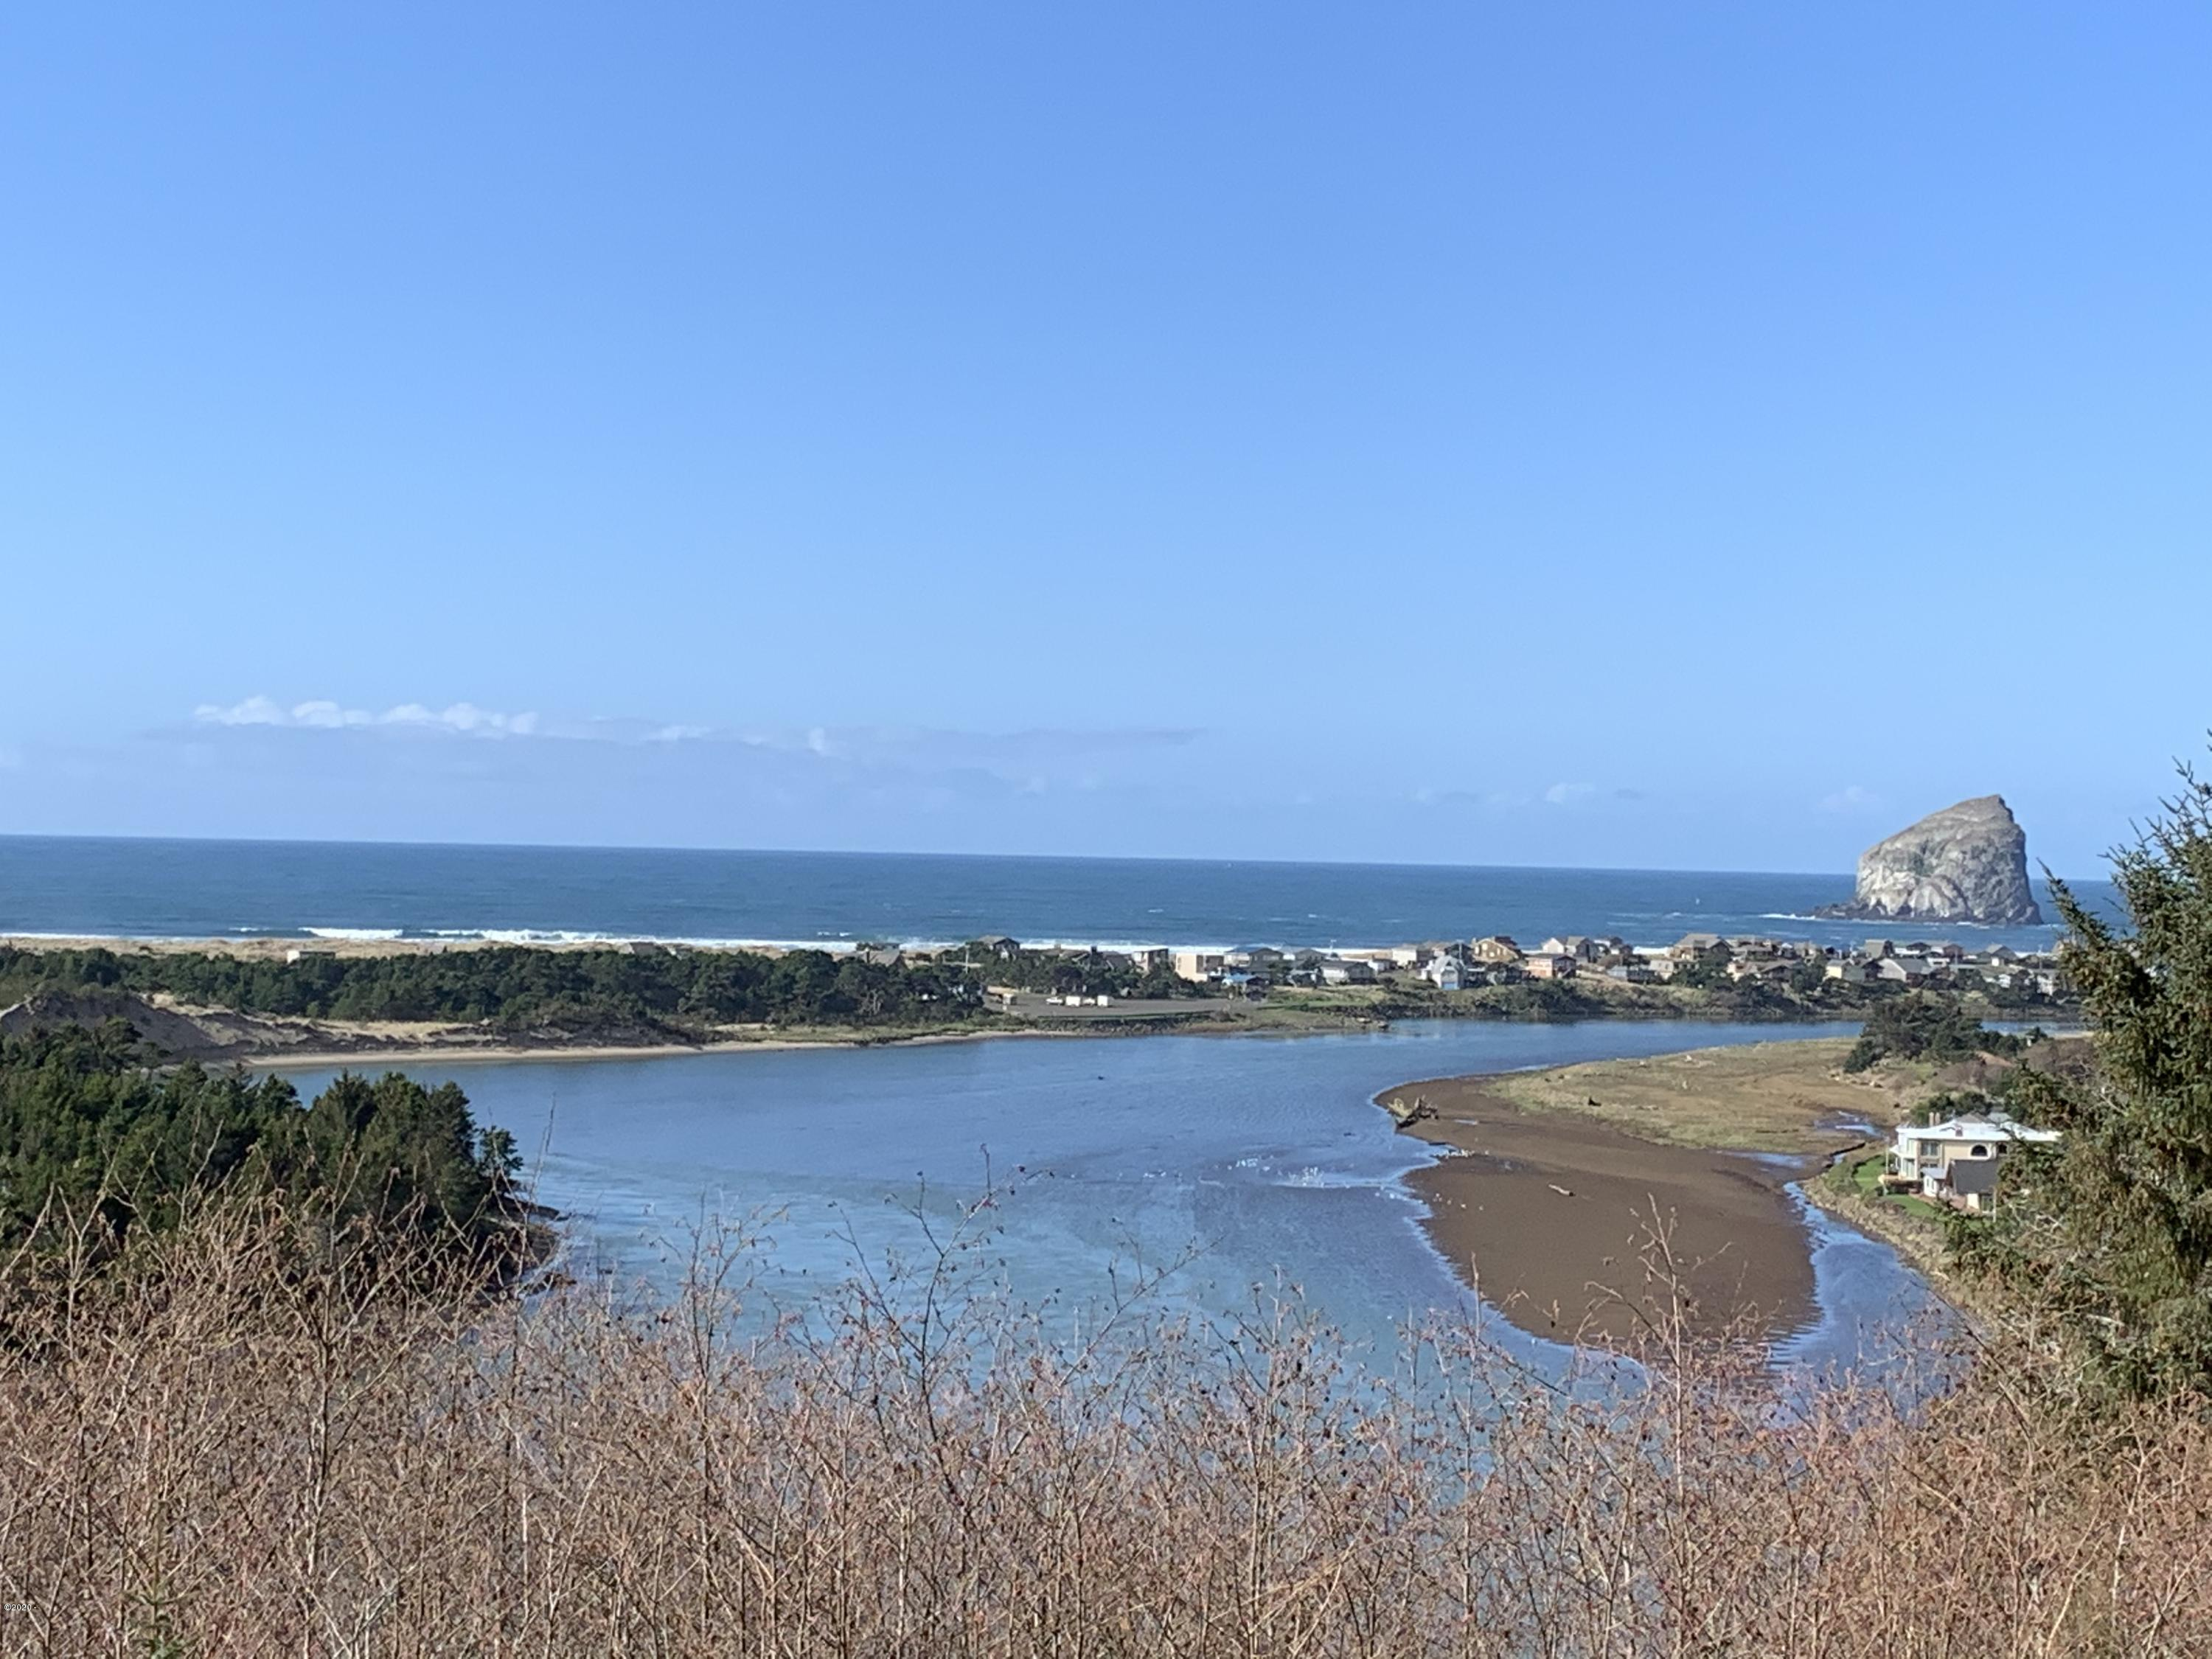 LOT 55 Kingfisher Loop, Pacific City, OR 97135 - Lot 55